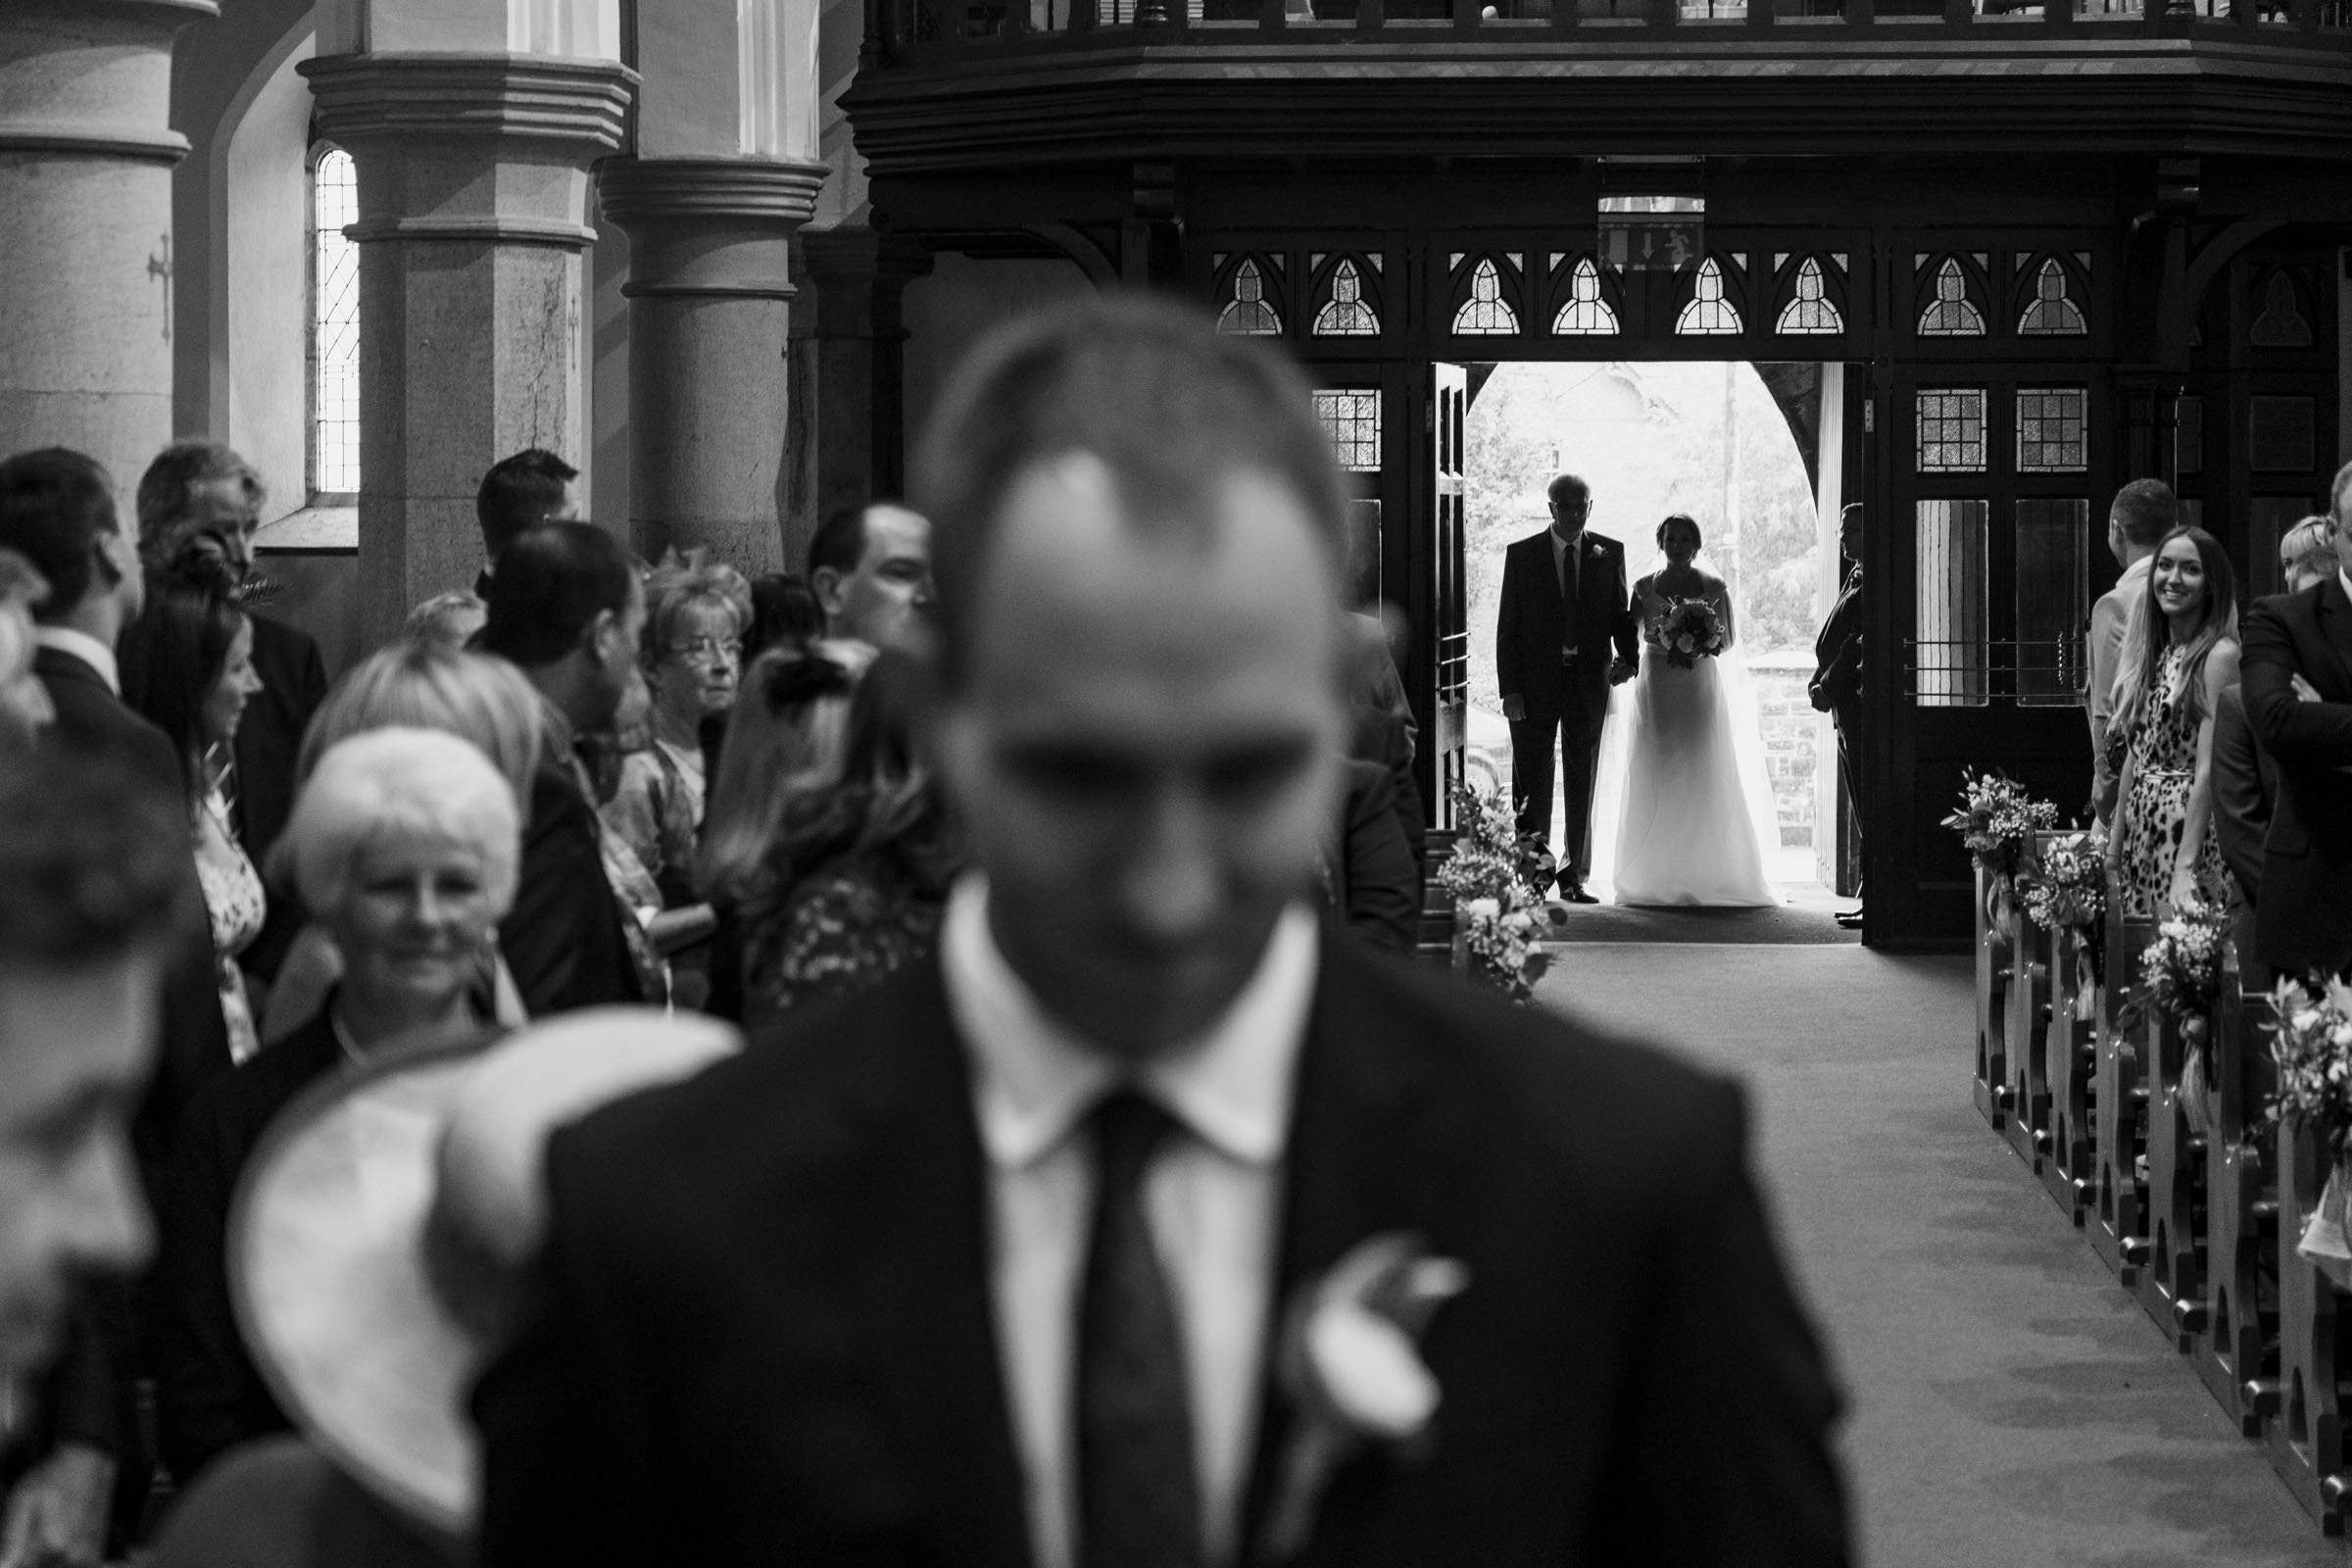 Bride enters church with father while groom waits at altar - photo by The Portrait Rooms